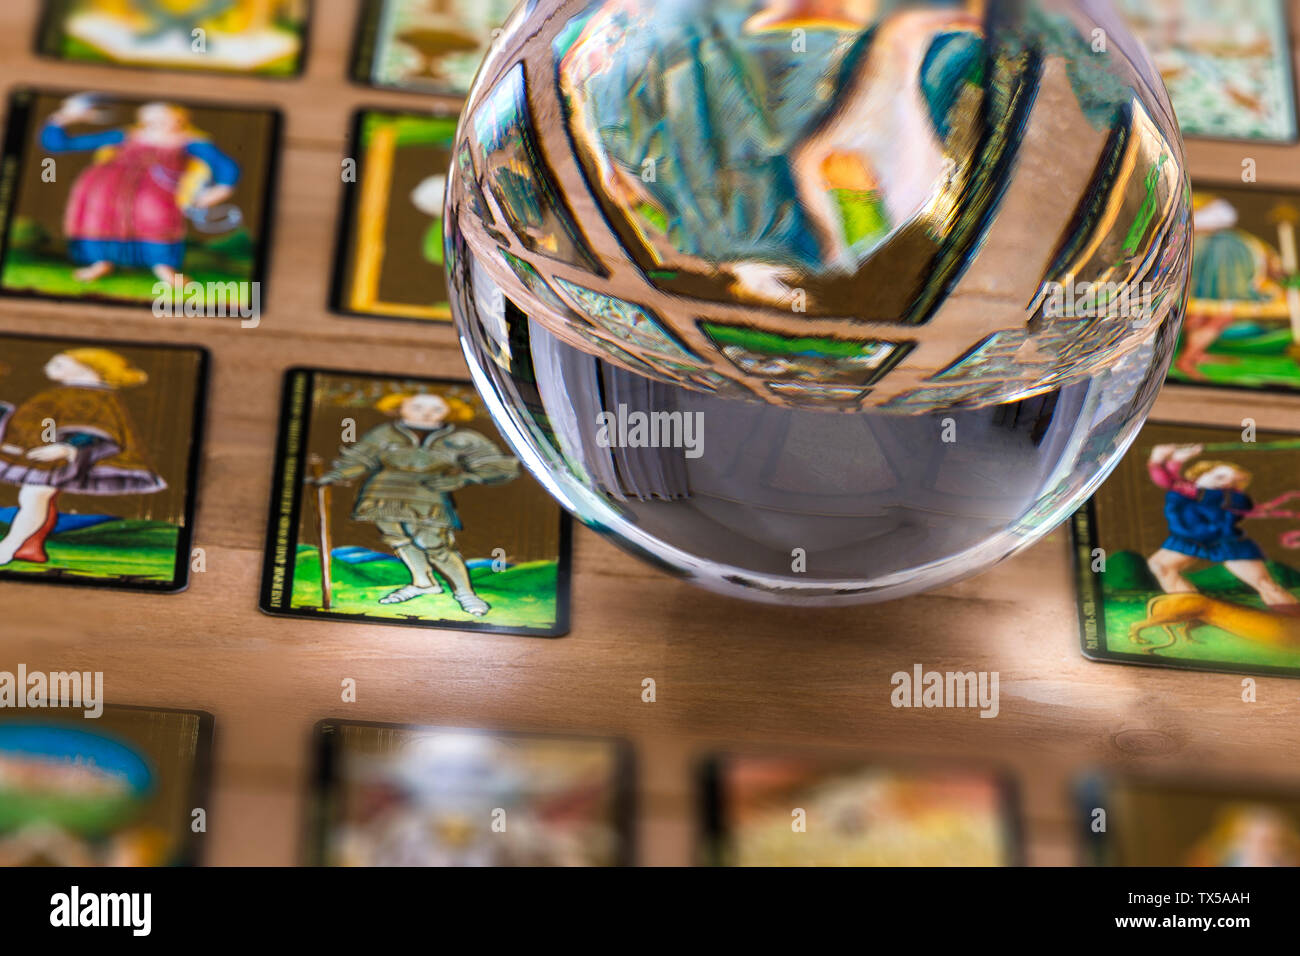 Fortune teller Crystal ball and in transparency tarot cards